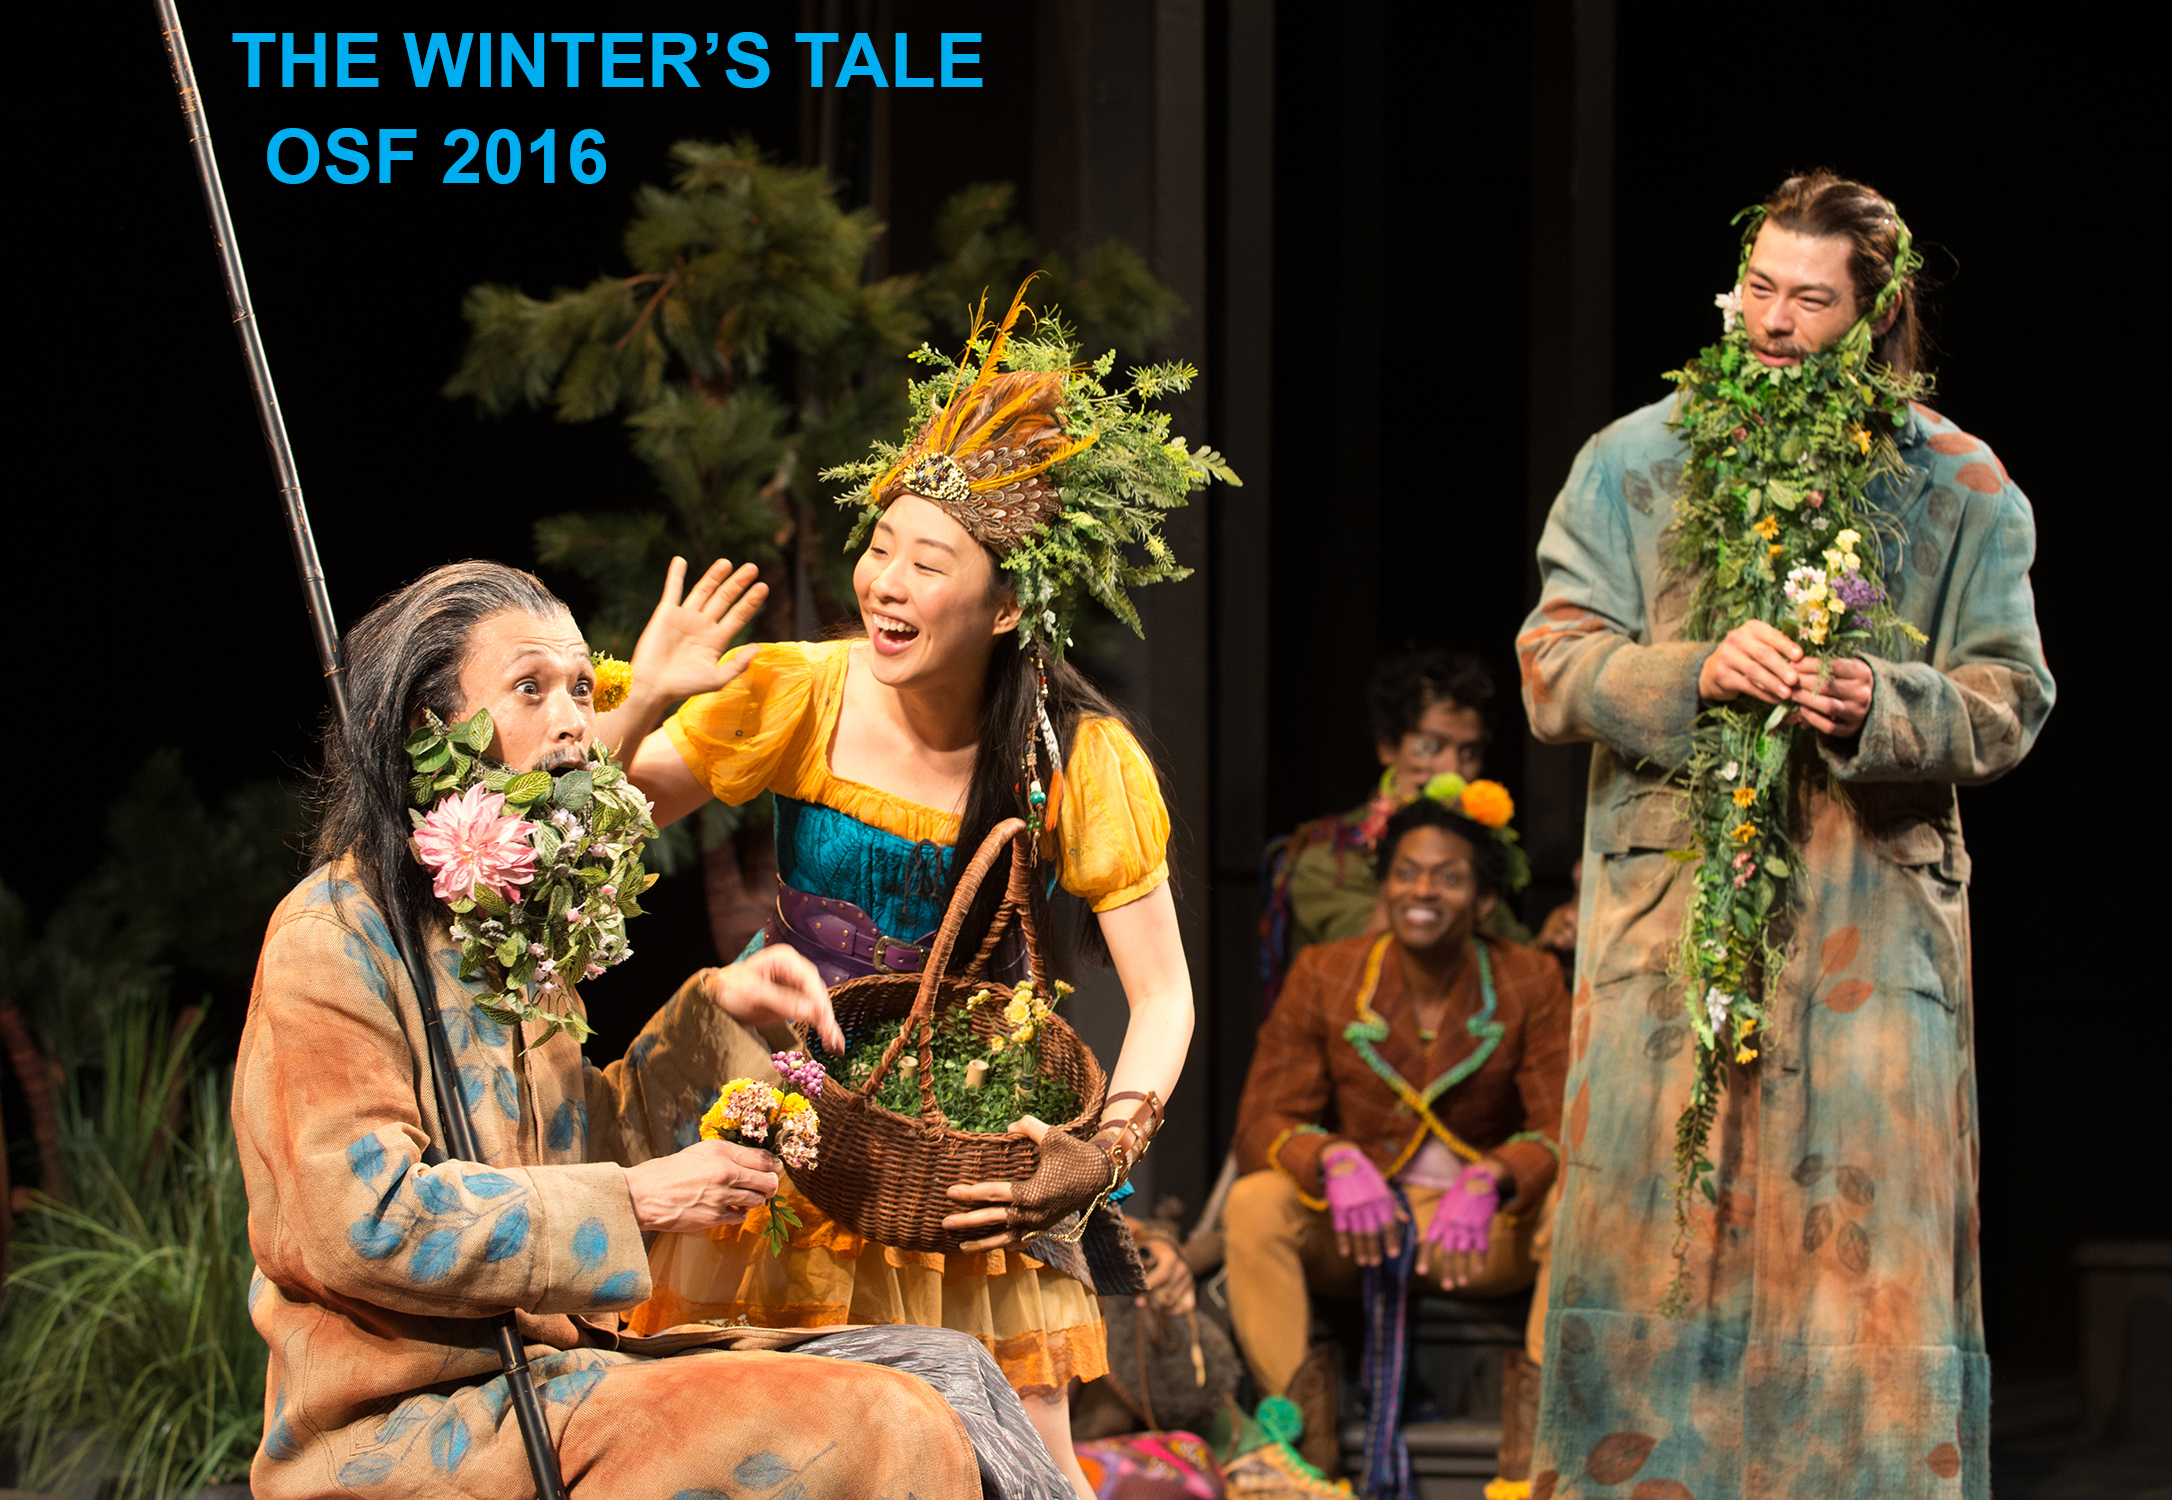 OSF 2016 A WINTERS TALE